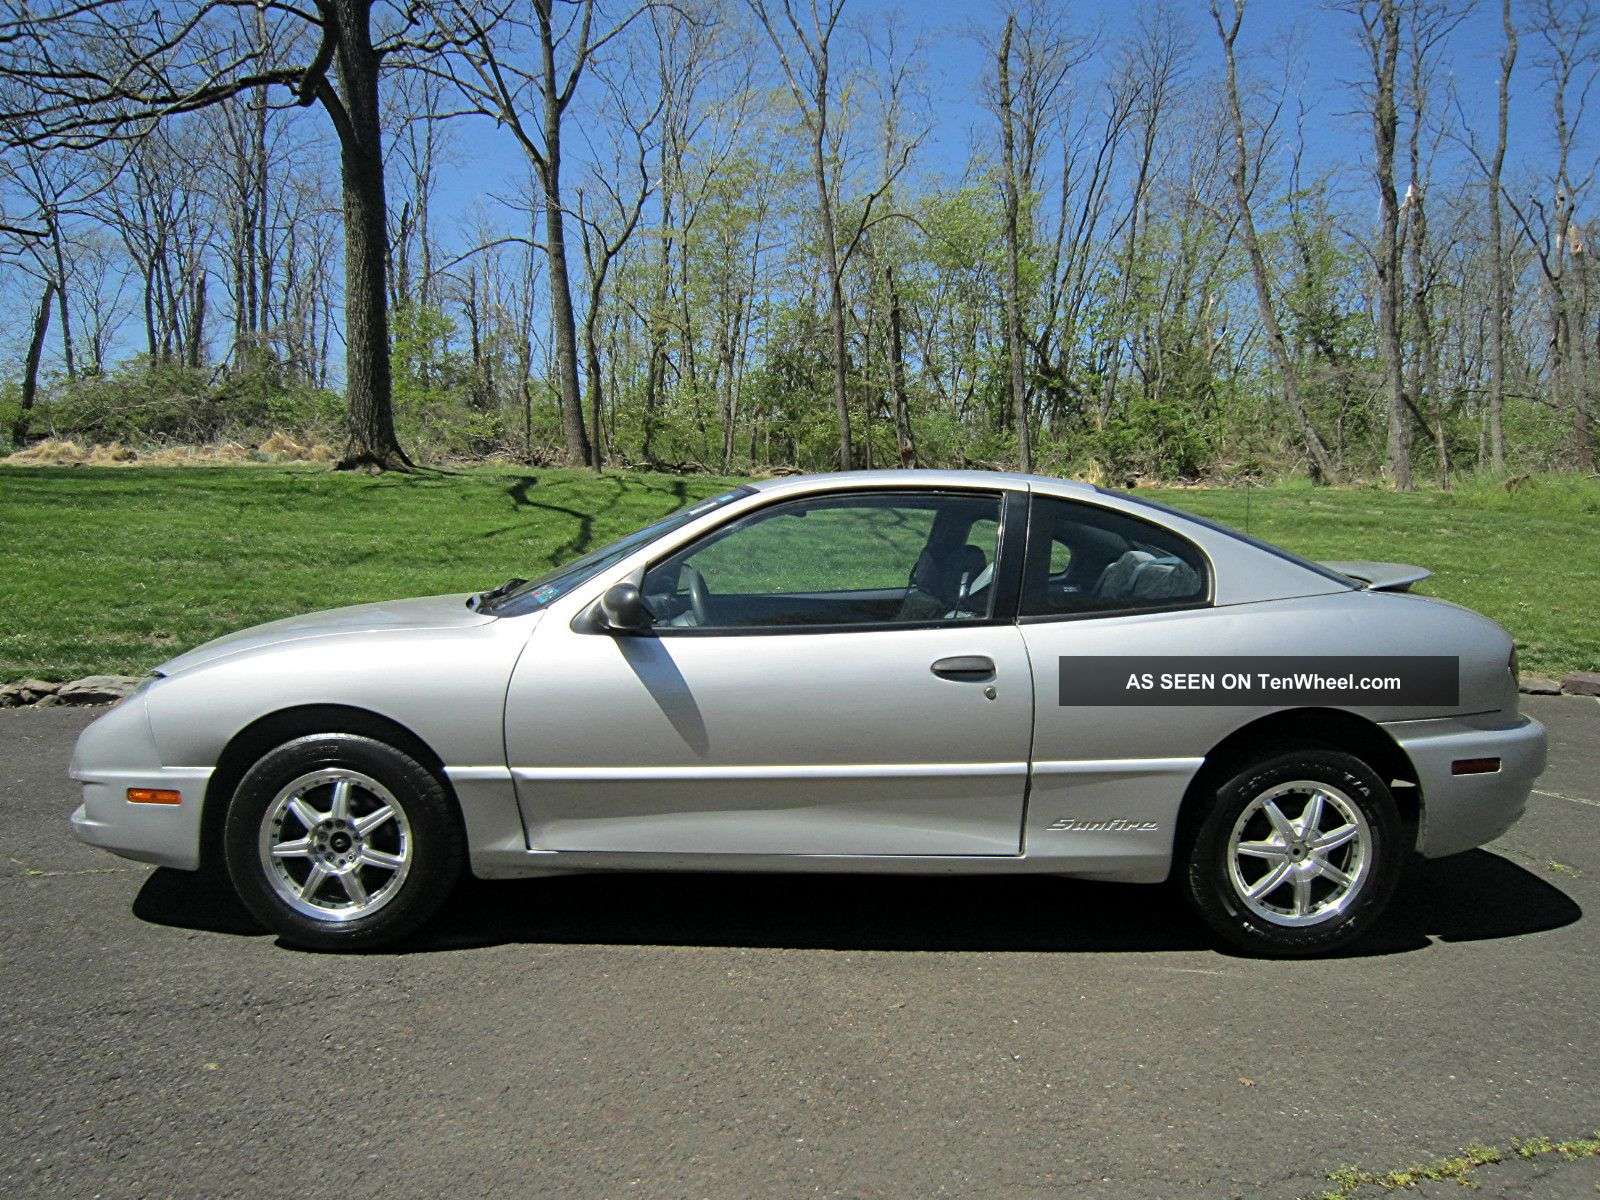 2003 pontiac sunfire gt coupe 2 door 2 2l with tenwheel